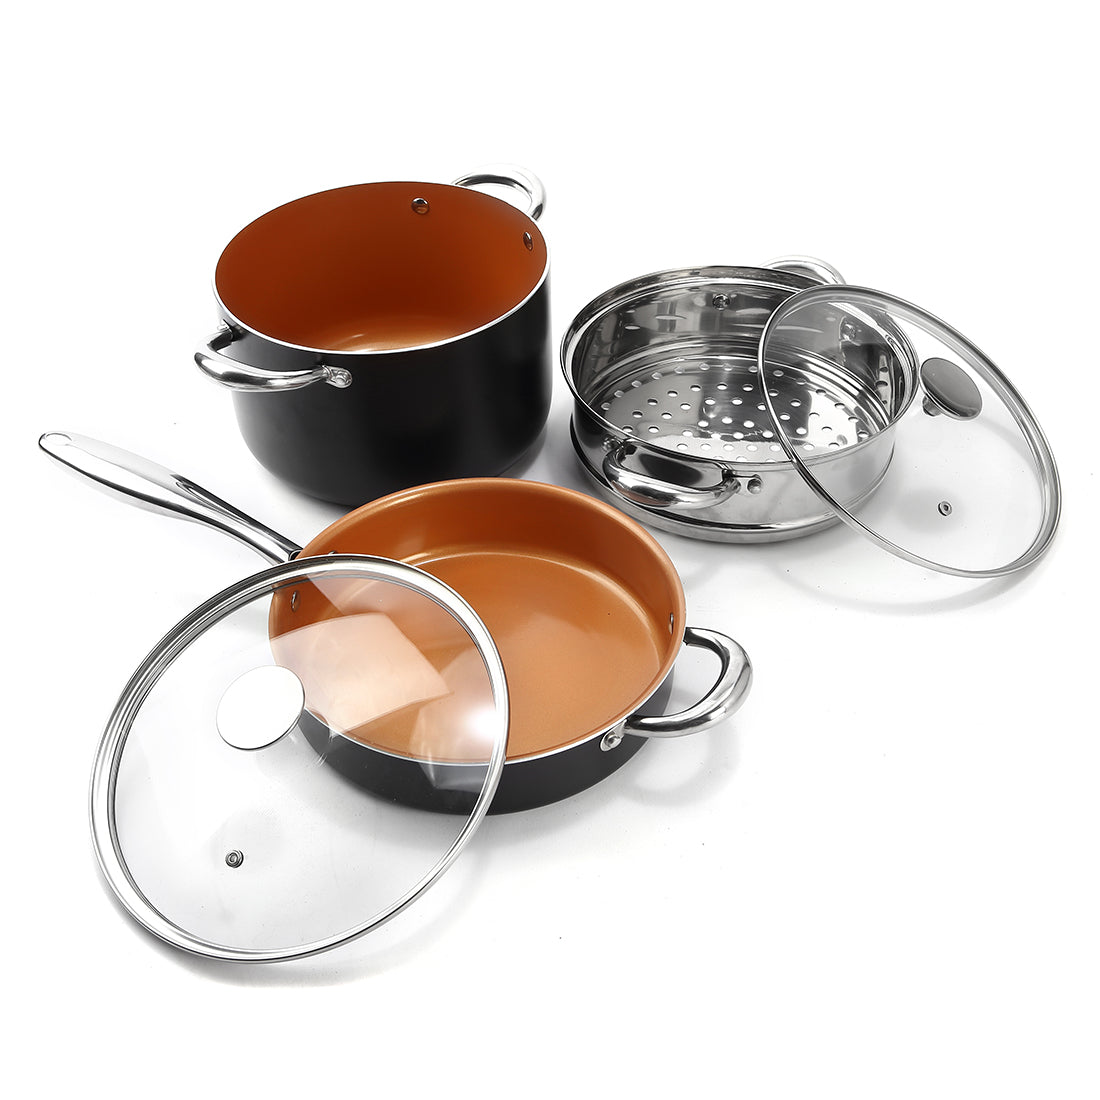 Michelangelo Copper Cookware Set 12 Piece With Nonstick